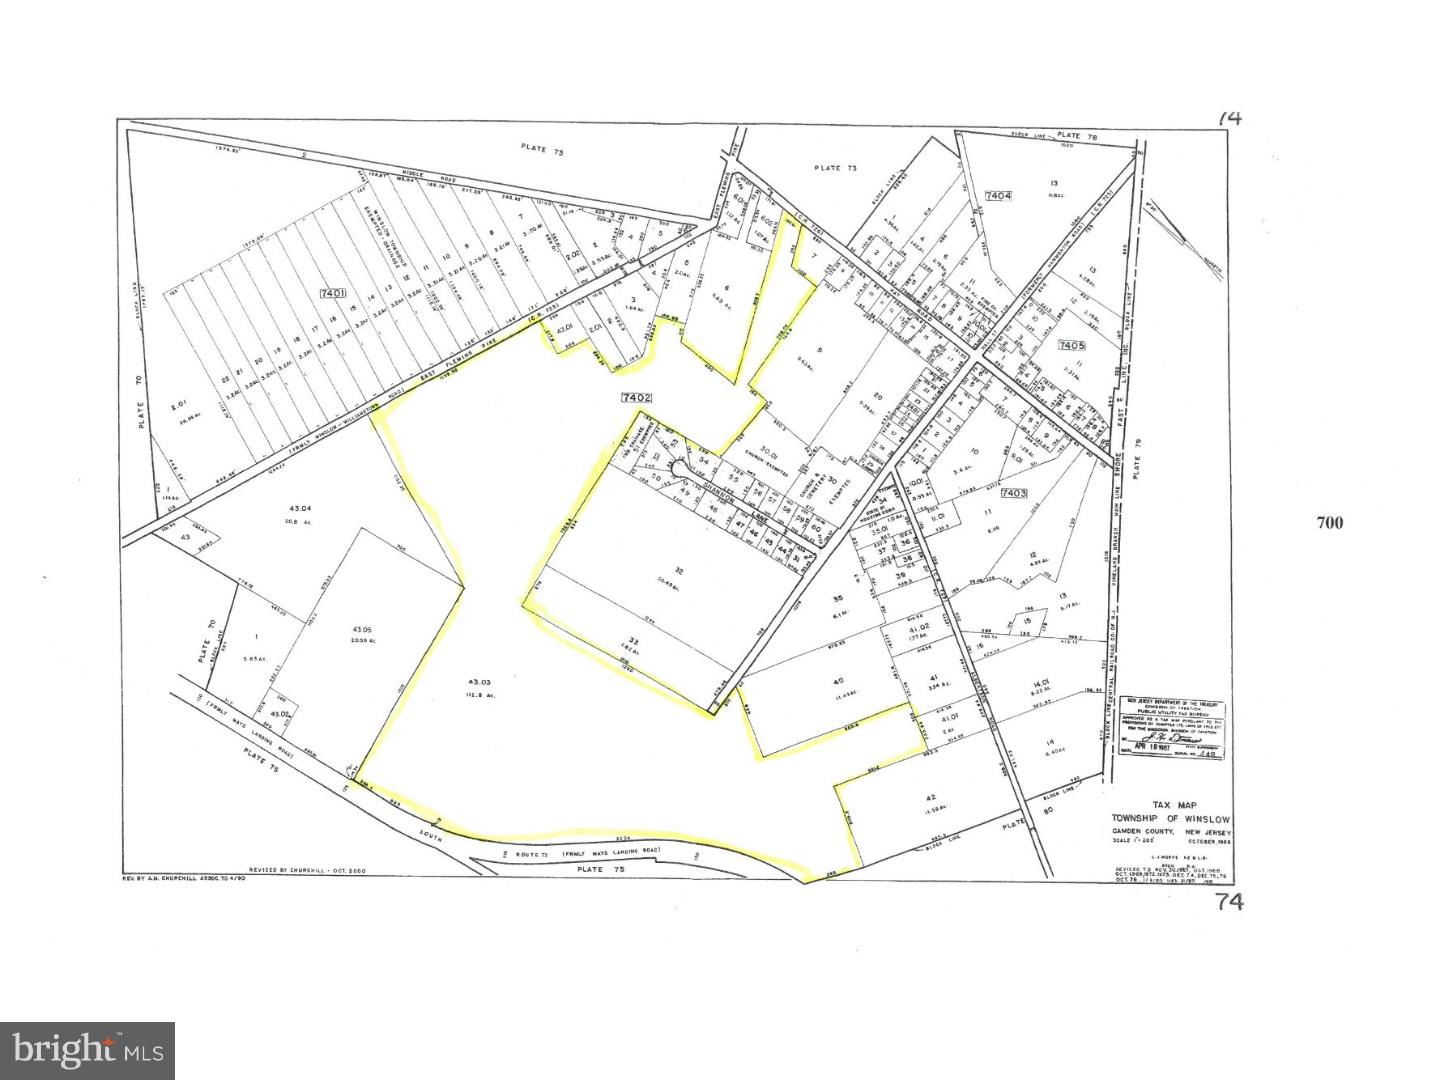 Land for Sale at L:43.03 ROUTE 73 Hammonton, New Jersey 08037 United States